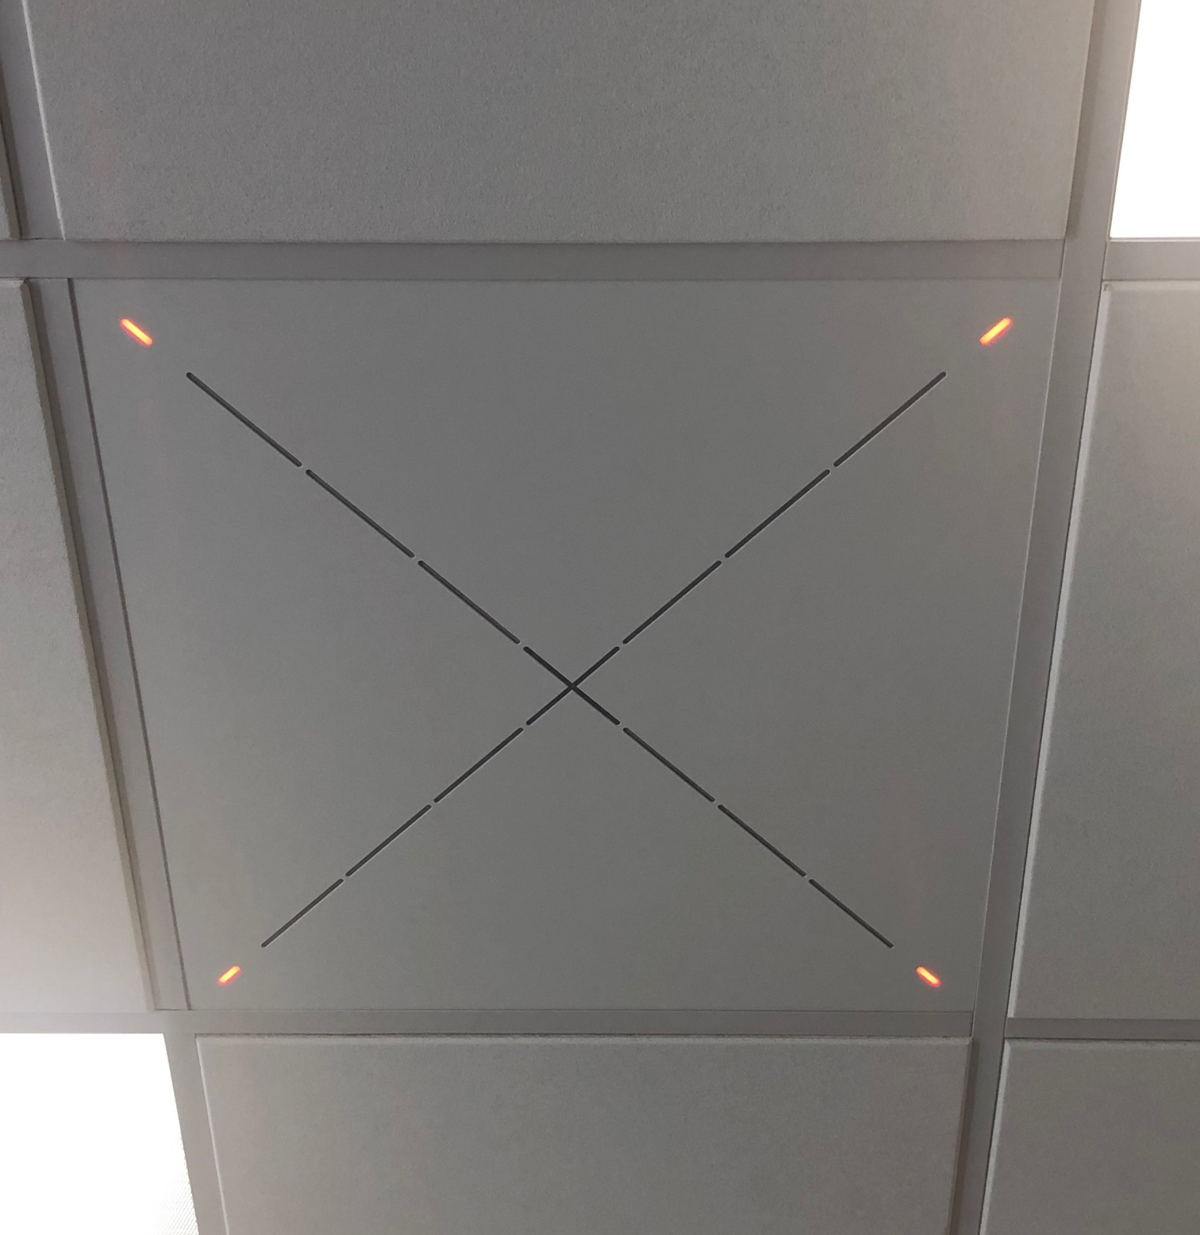 A close up of Sennheiser's Team Connect Ceiling at St. John's University. The 2' x 2' tile is aesthetically seamless and easy to install. (Image courtesy of St. John's University)